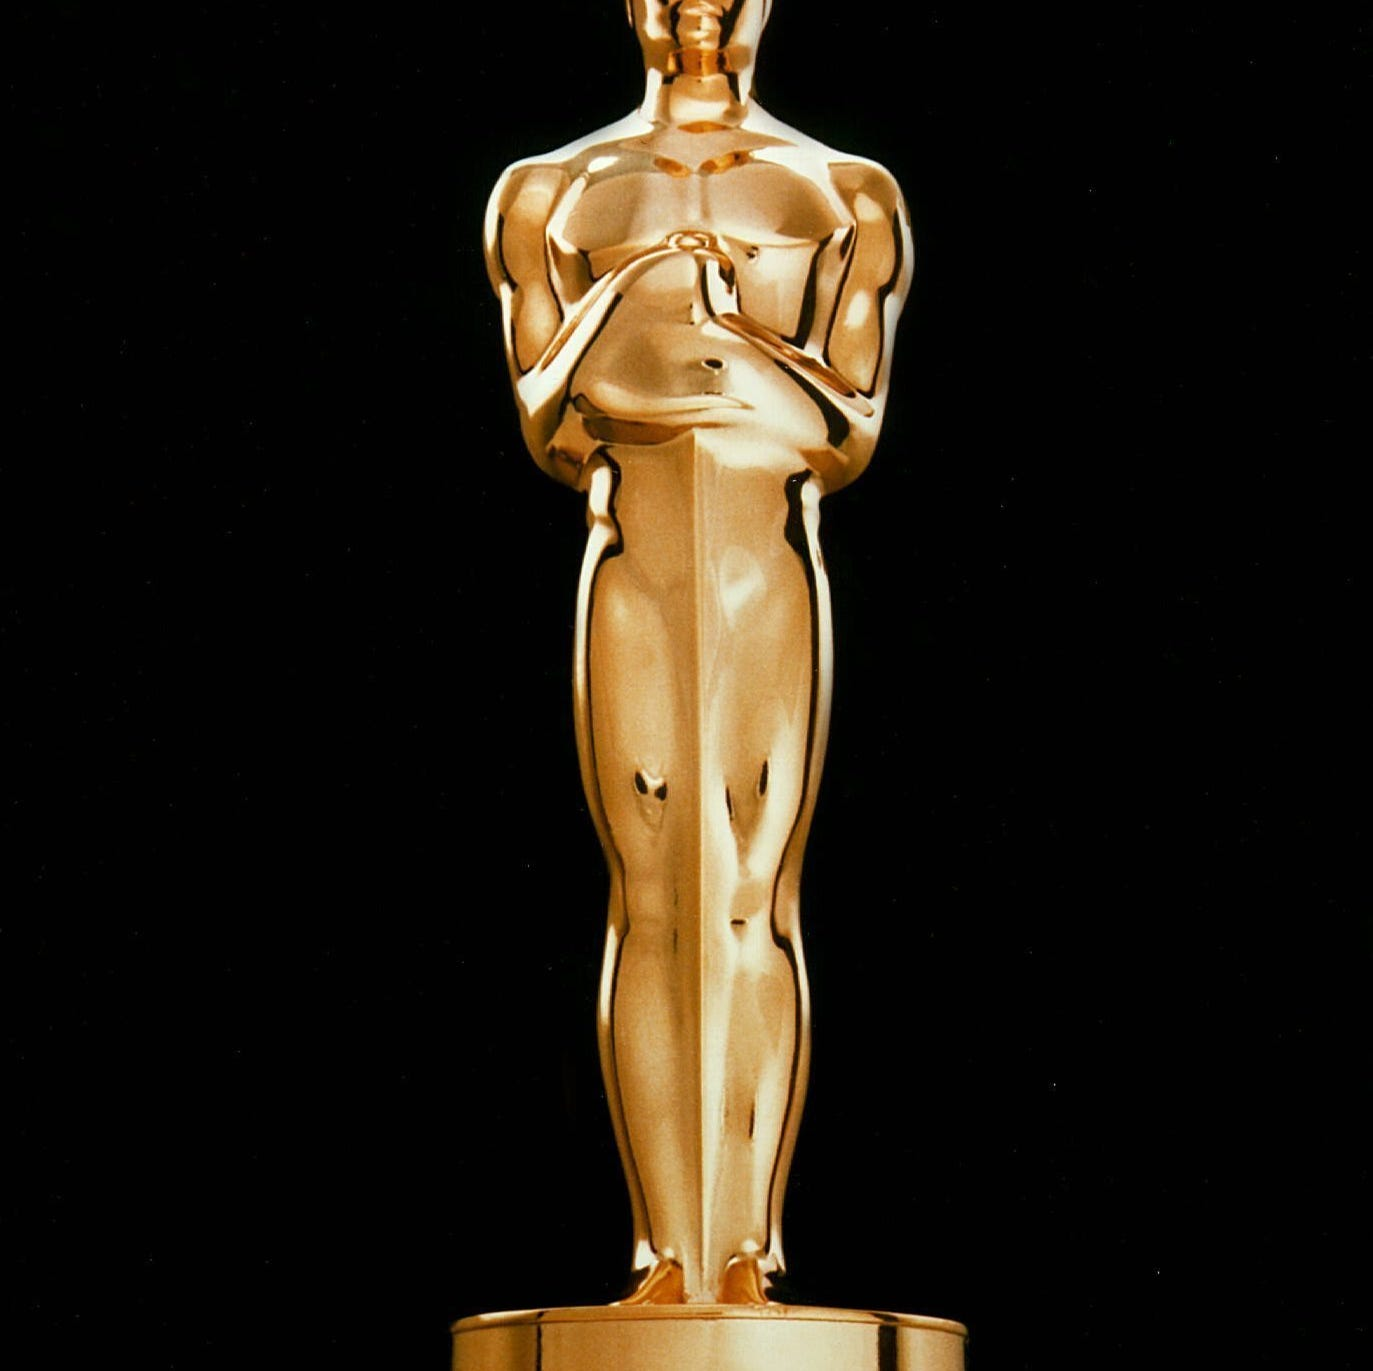 Movie enthusiast from Lincoln Park wins $1,000 prize in Free Press Oscar Derby